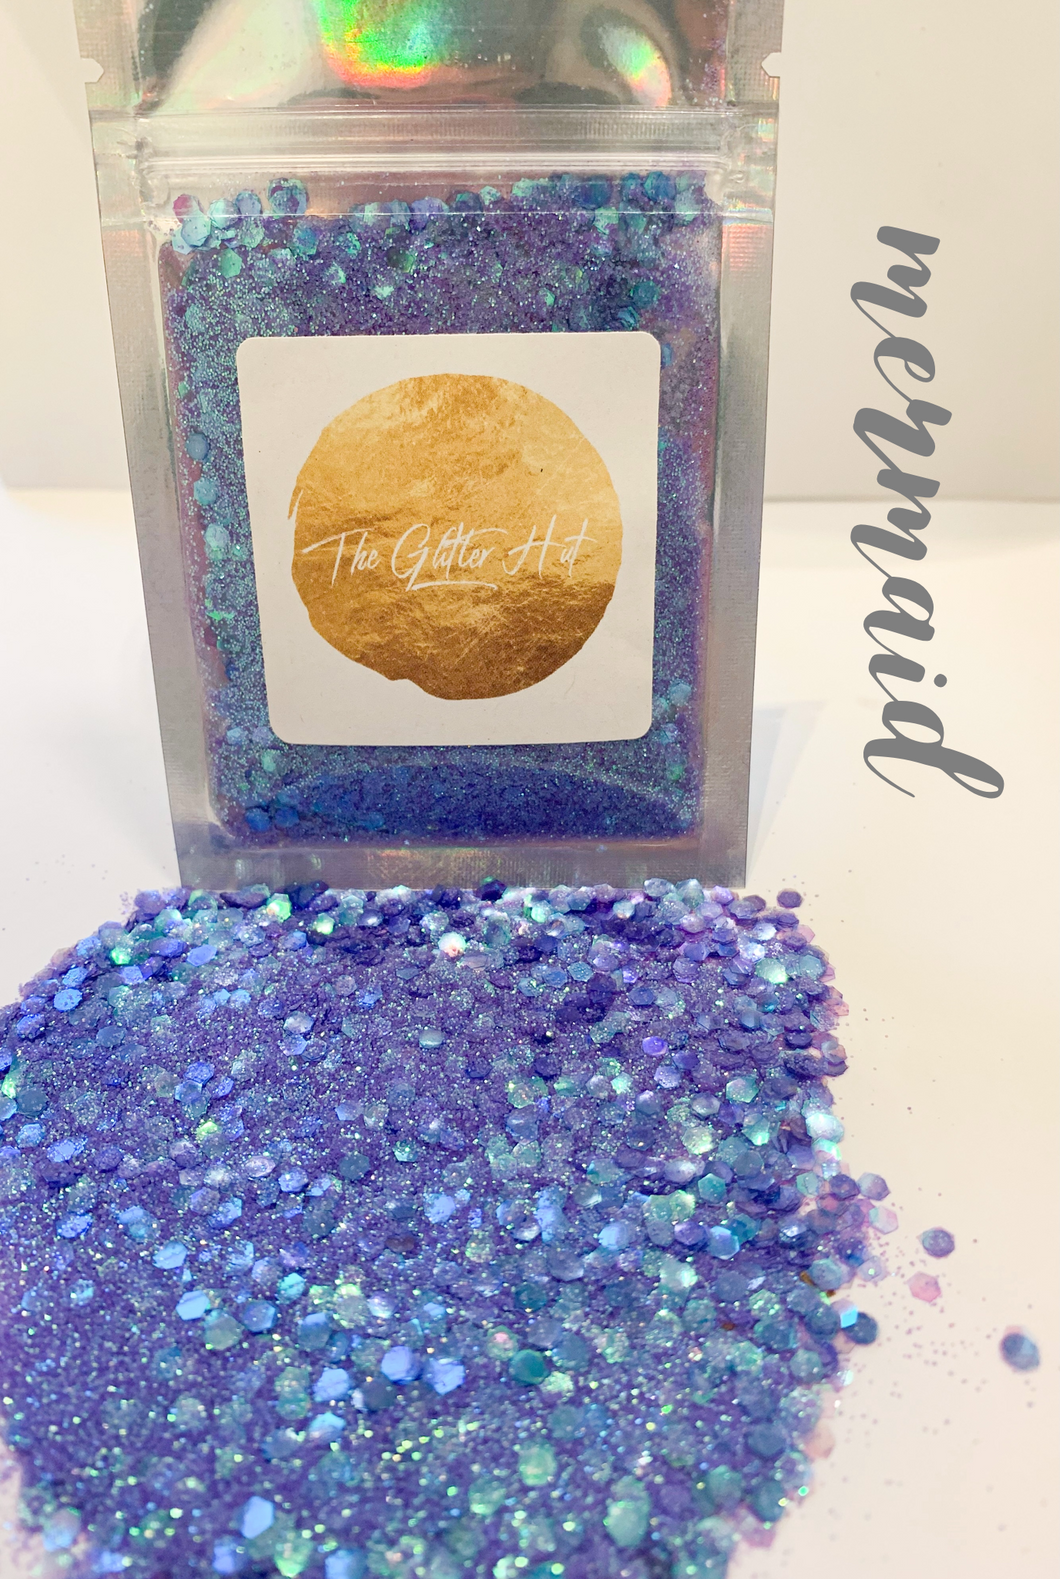 Chunky Fine Mixed 10g Glitter Bag - Mermaid